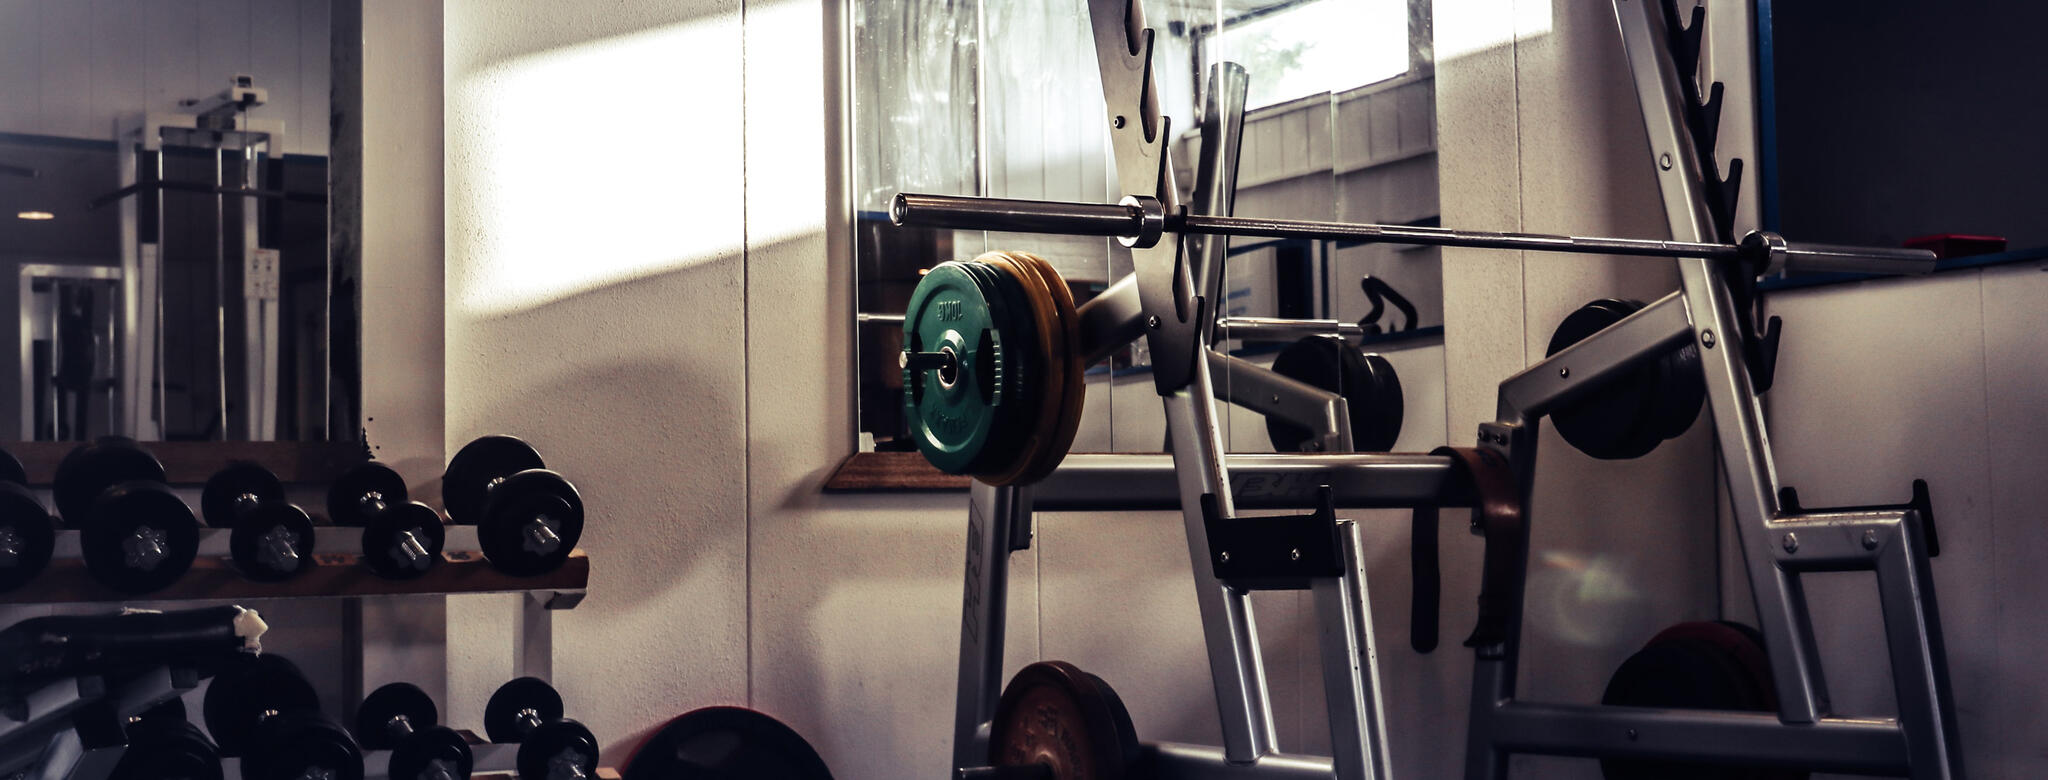 Abandoned weights in a dark, empty gym